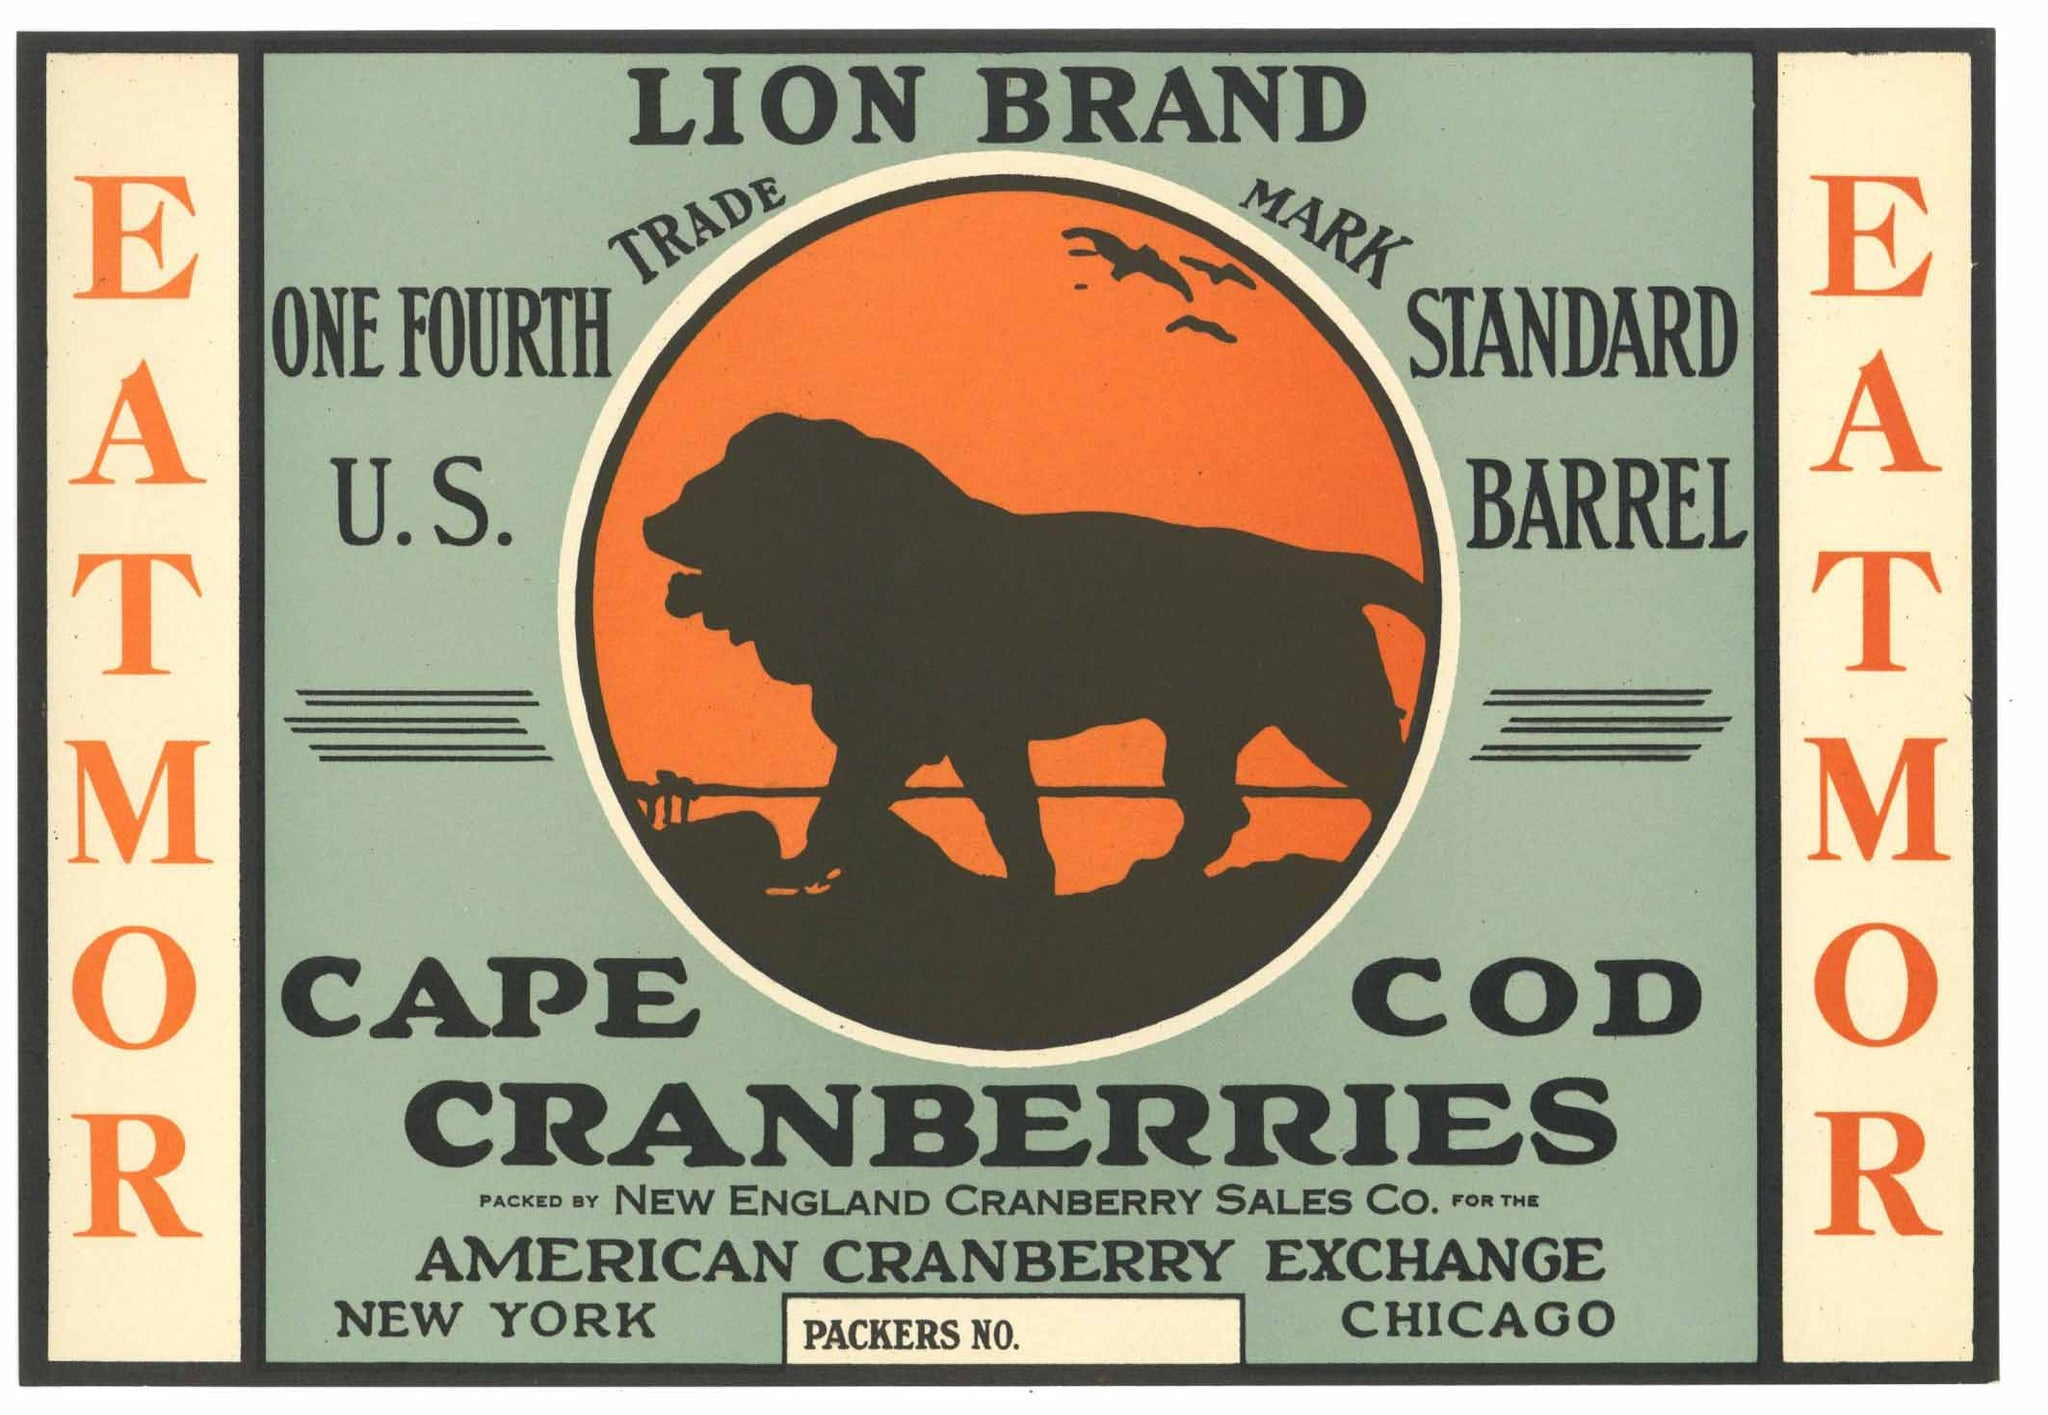 Lion Brand Vintage Cape Cod Cranberry Crate Label, 1/4, o